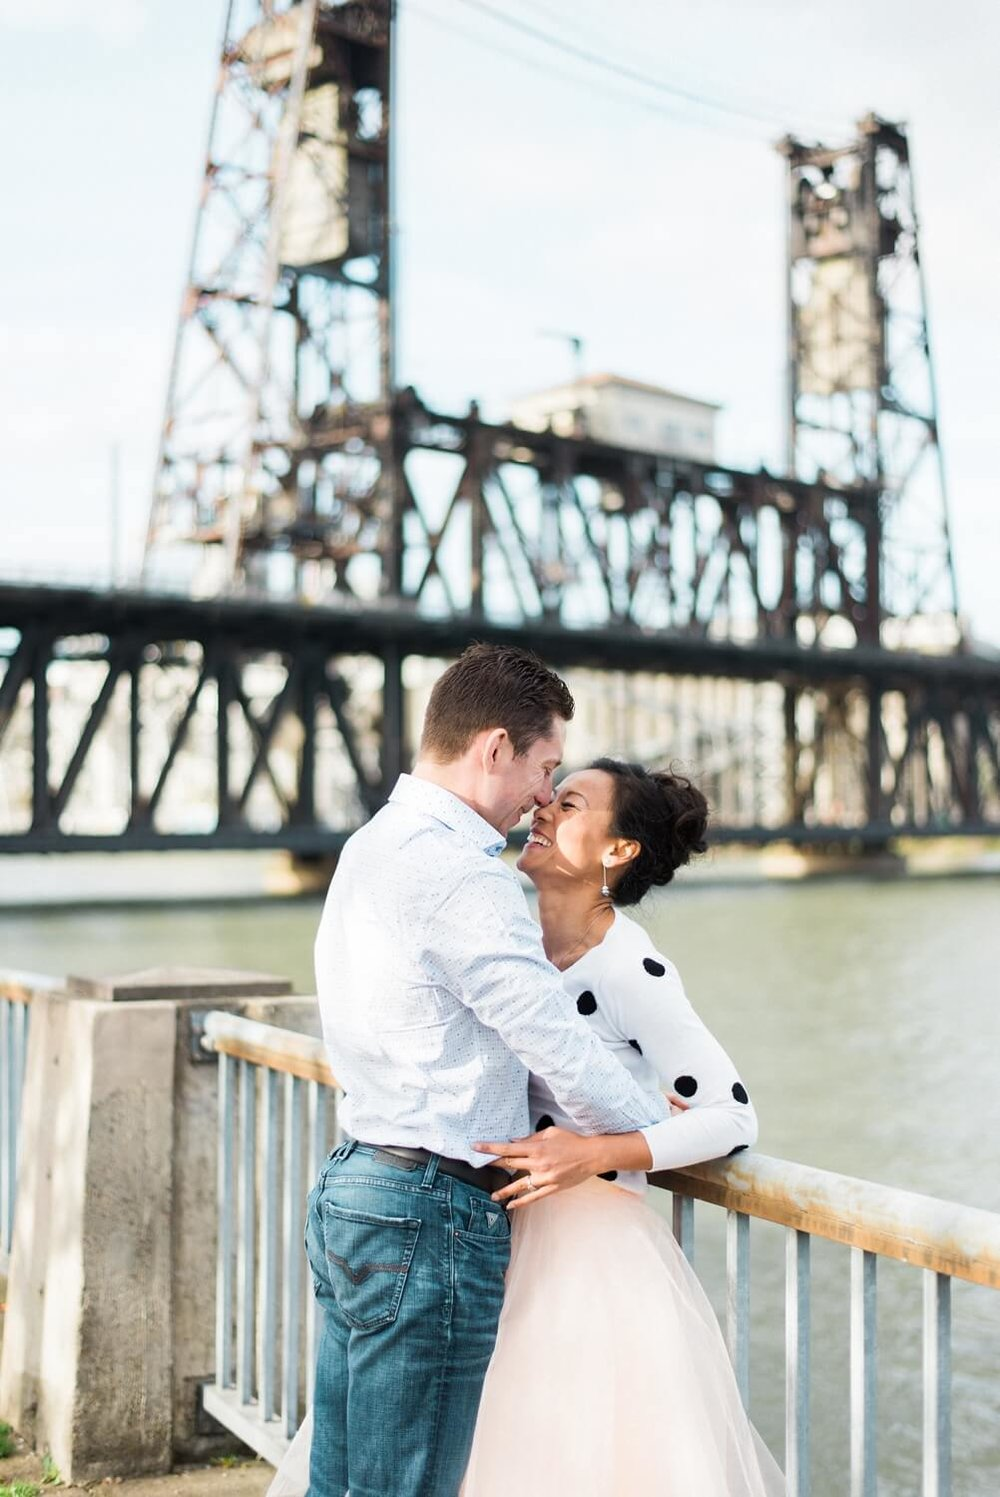 portland-waterfront-engagement-cherry-blossom-cathedral-park-sokhorn-jay-059_cr.jpg